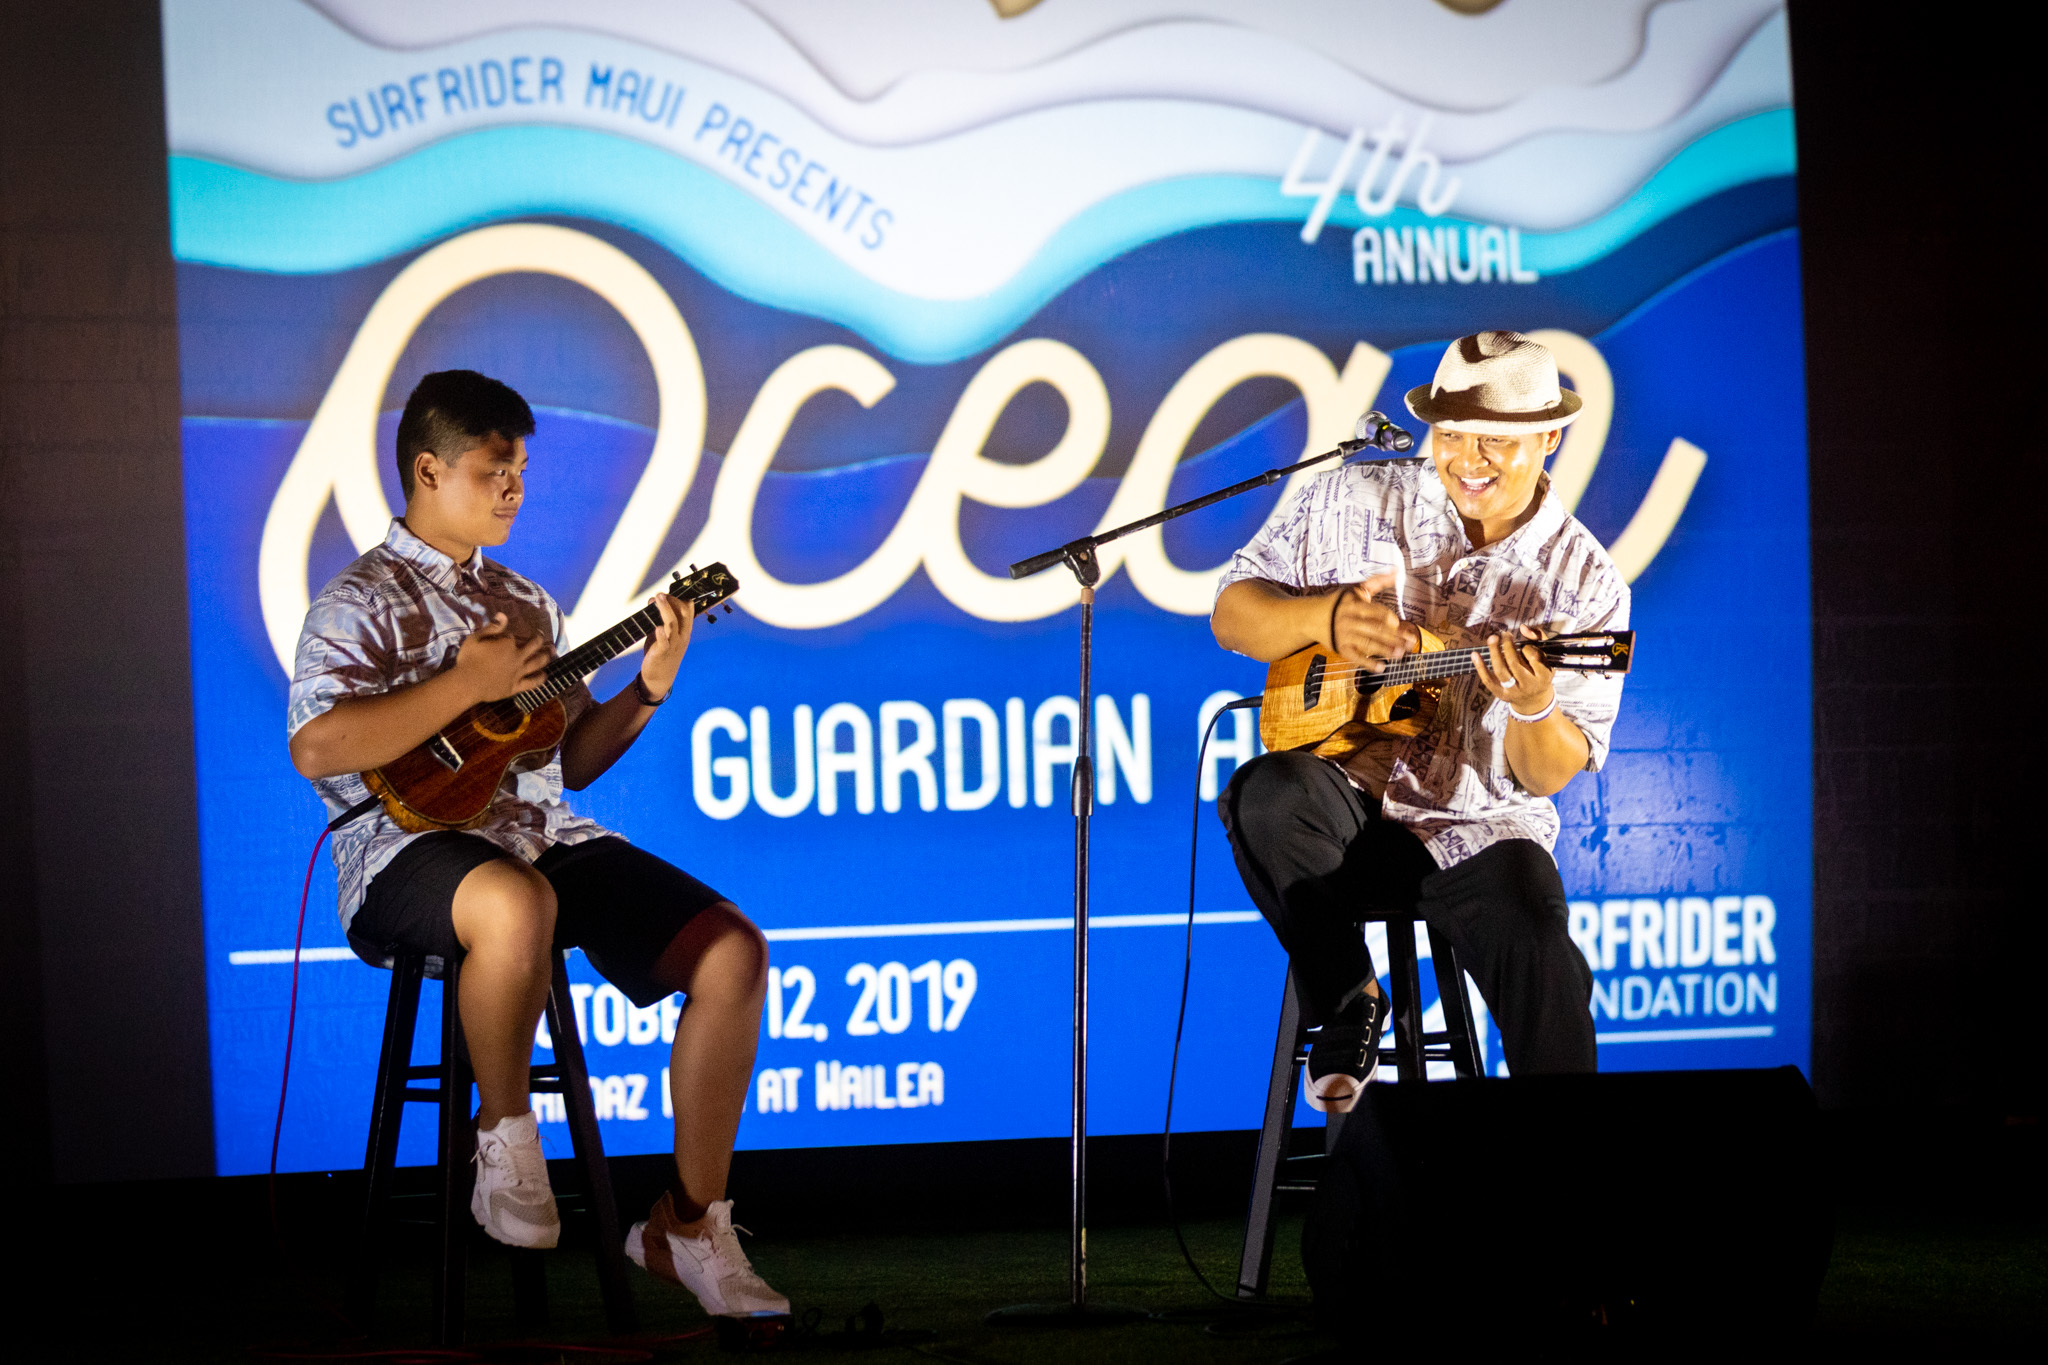 Surfrider-Foundation-OGA-10-12-19_135_web_berkowitz